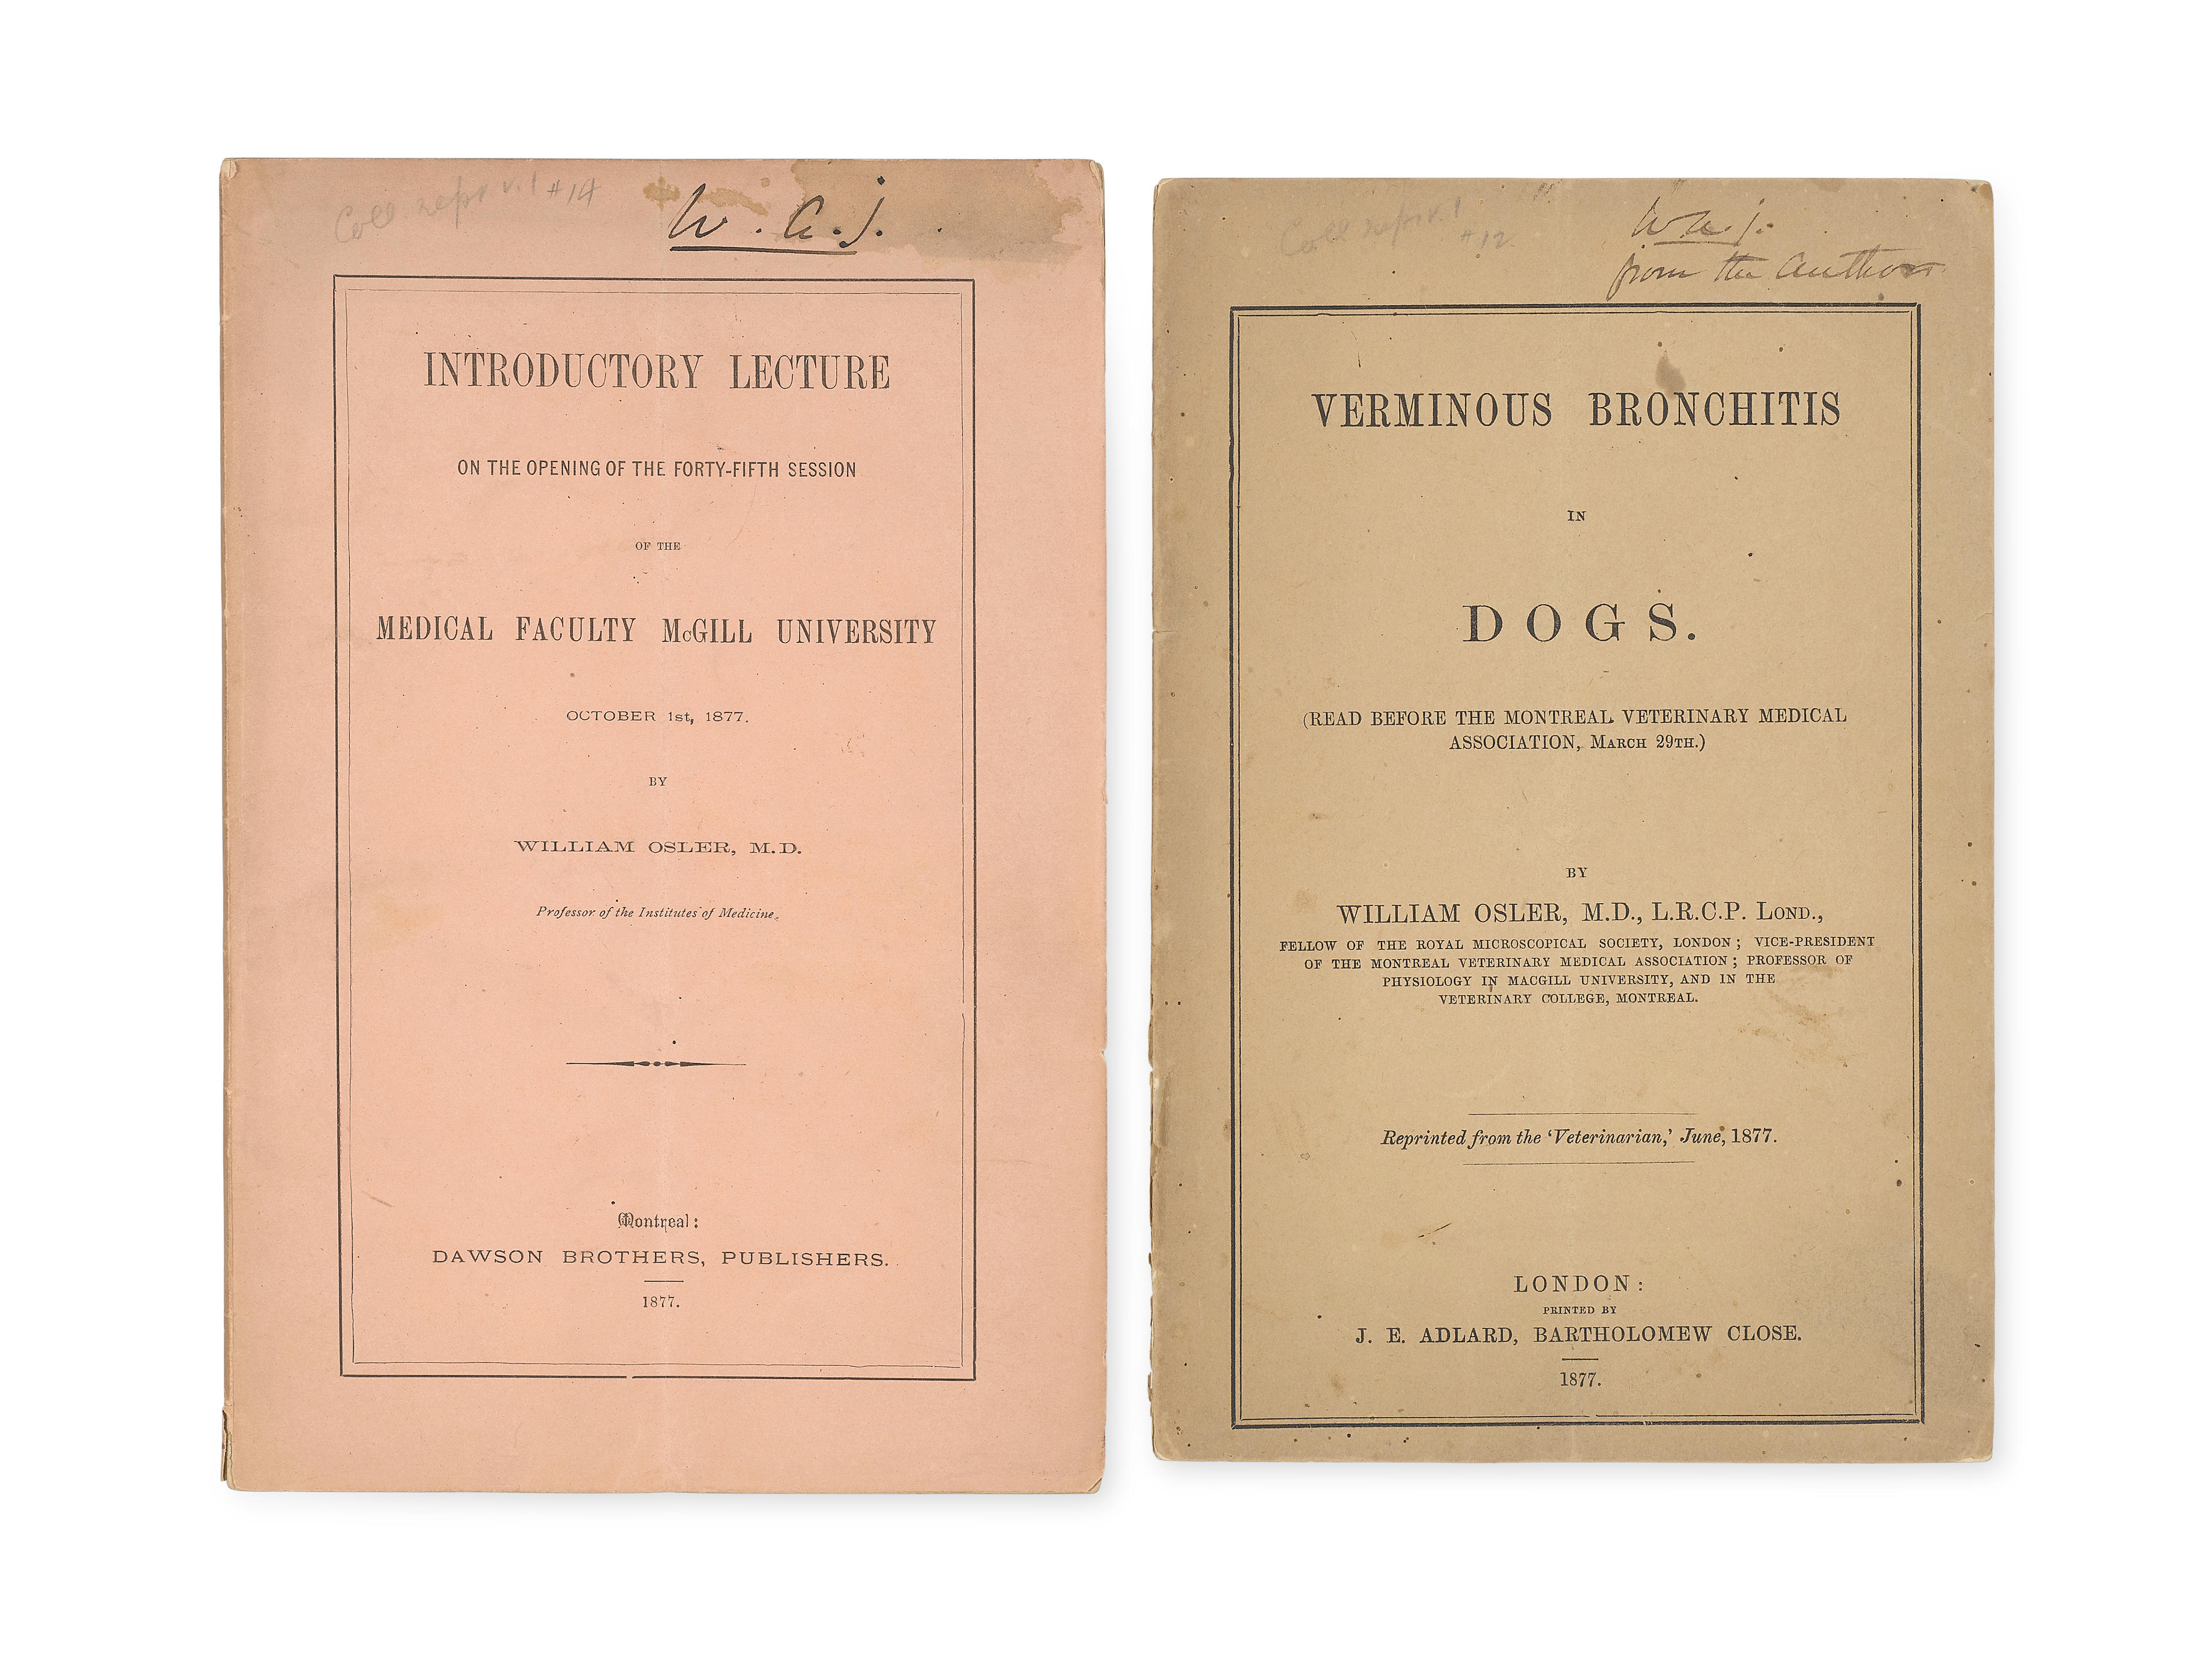 """OSLER, WILLIAM. 1849-1919. Two early pamphlets inscribed to """"W.A.J."""" presumably William Arthur Johnson, Osler's first influential teacher, including:"""